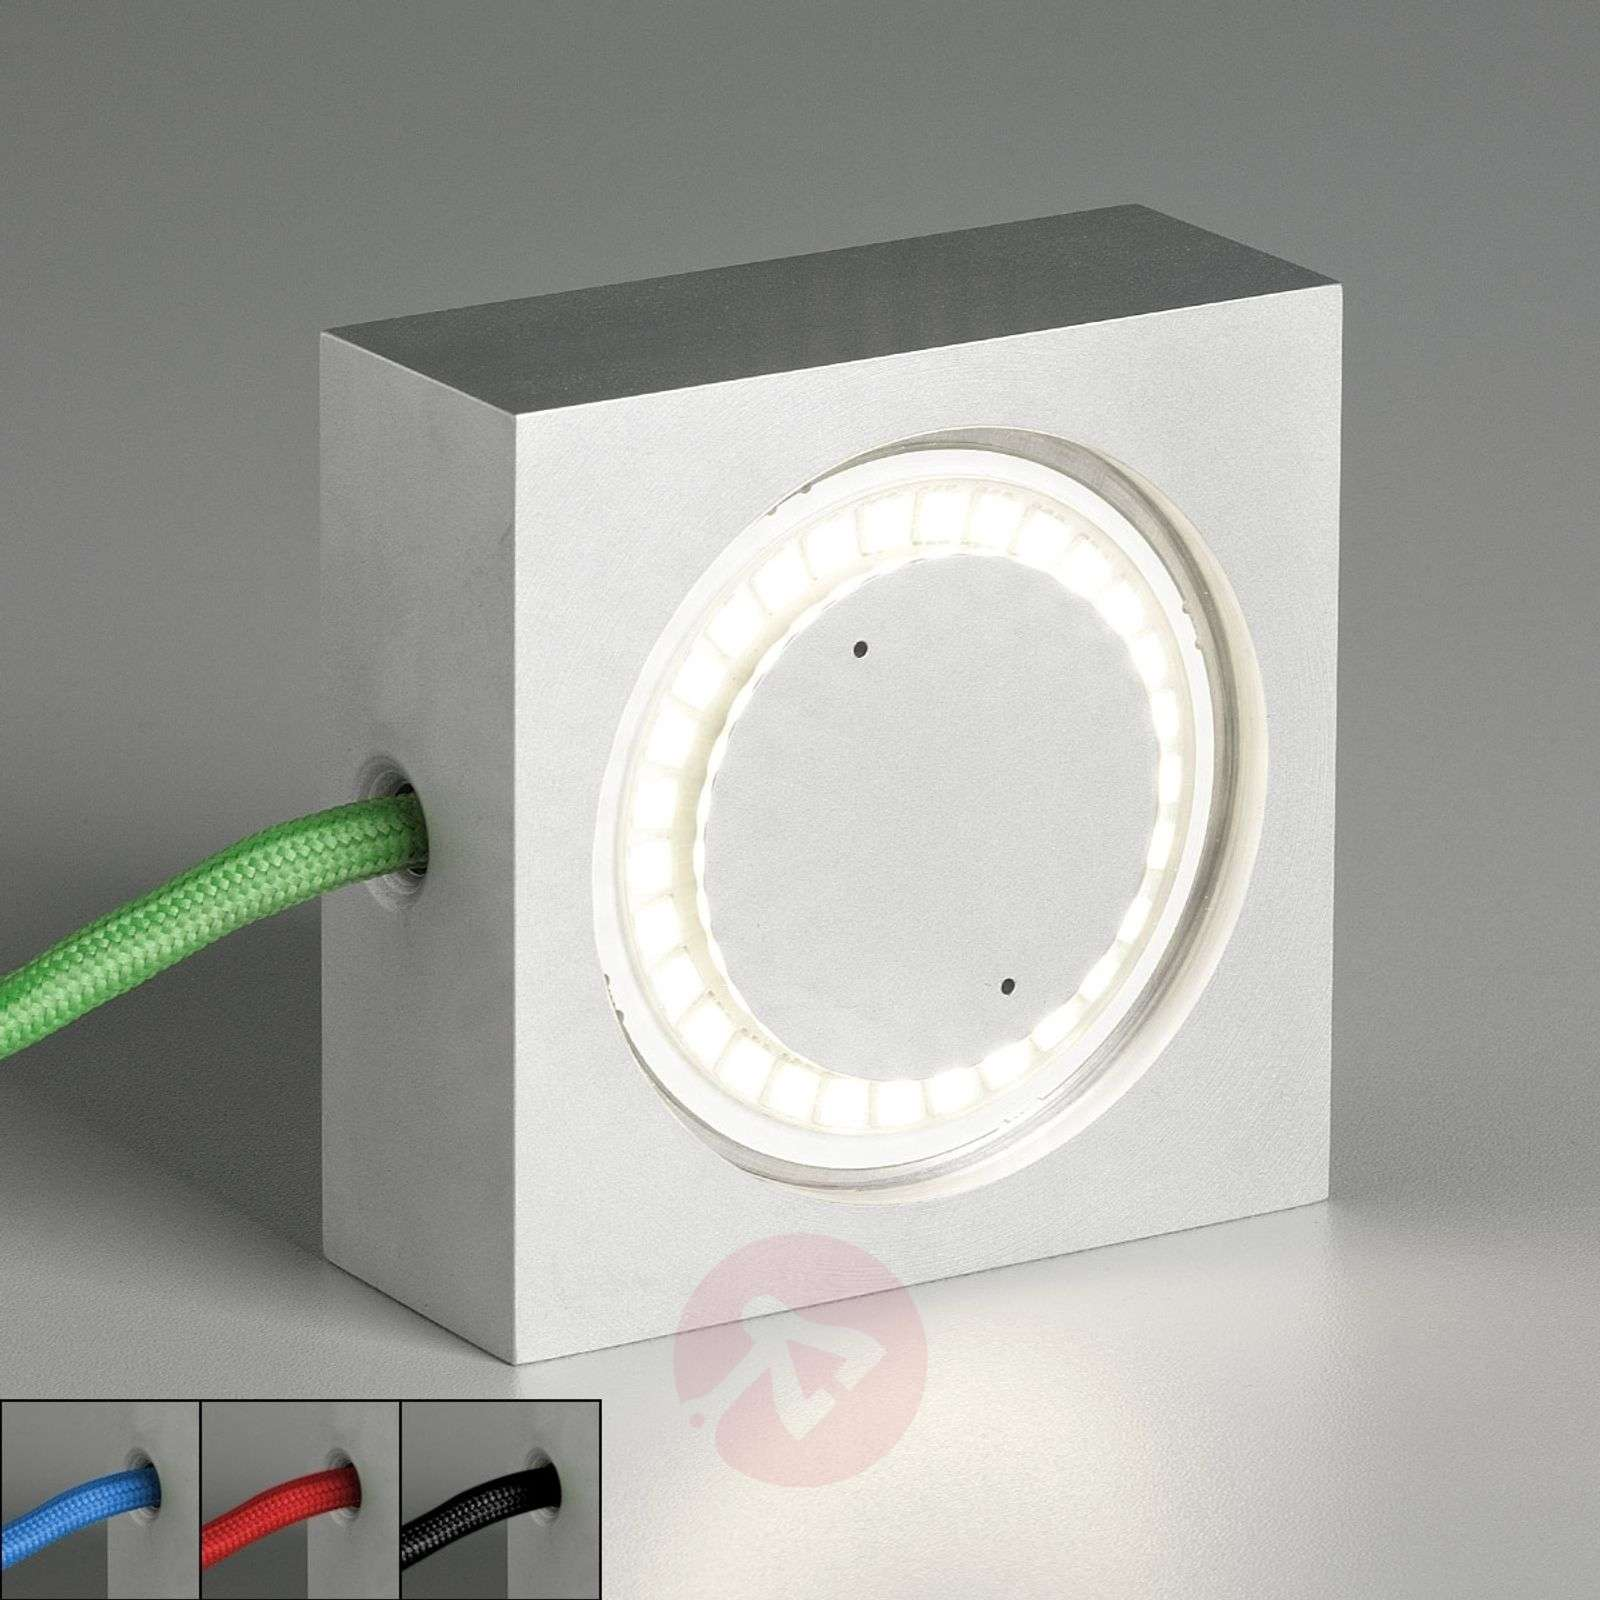 Multifunctionele lamp Square m LED, en gekl. snoer-9030194X-01